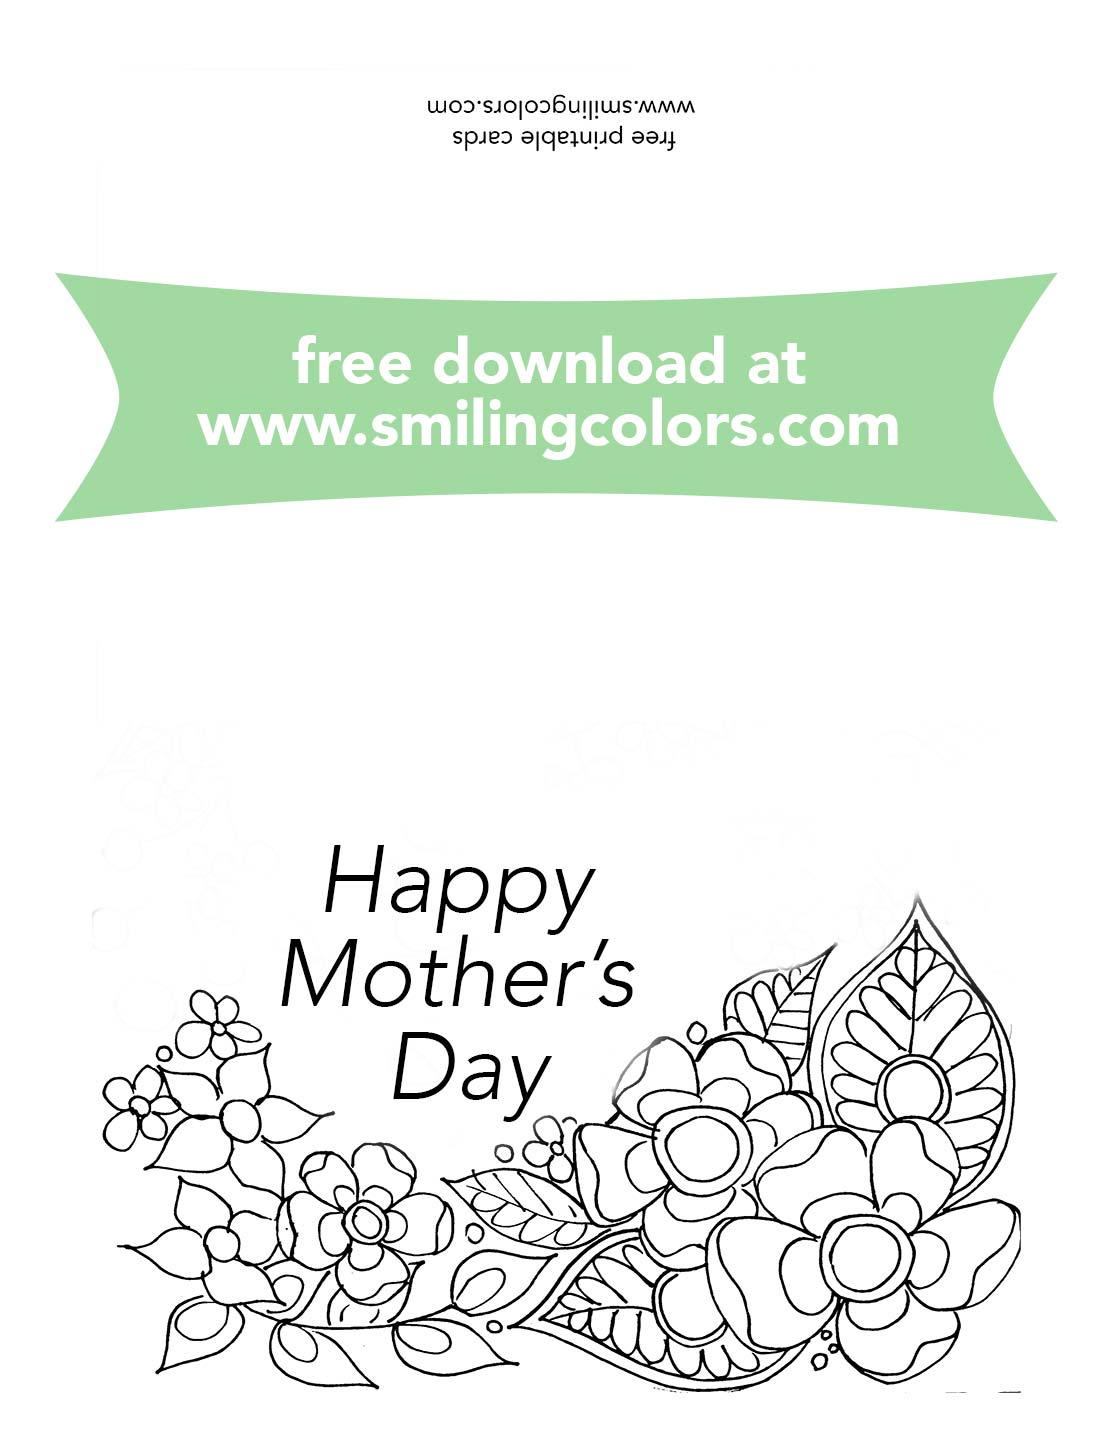 image regarding Printable Cards to Color called Moms working day coloring playing cards, Free of charge towards print and colour at present